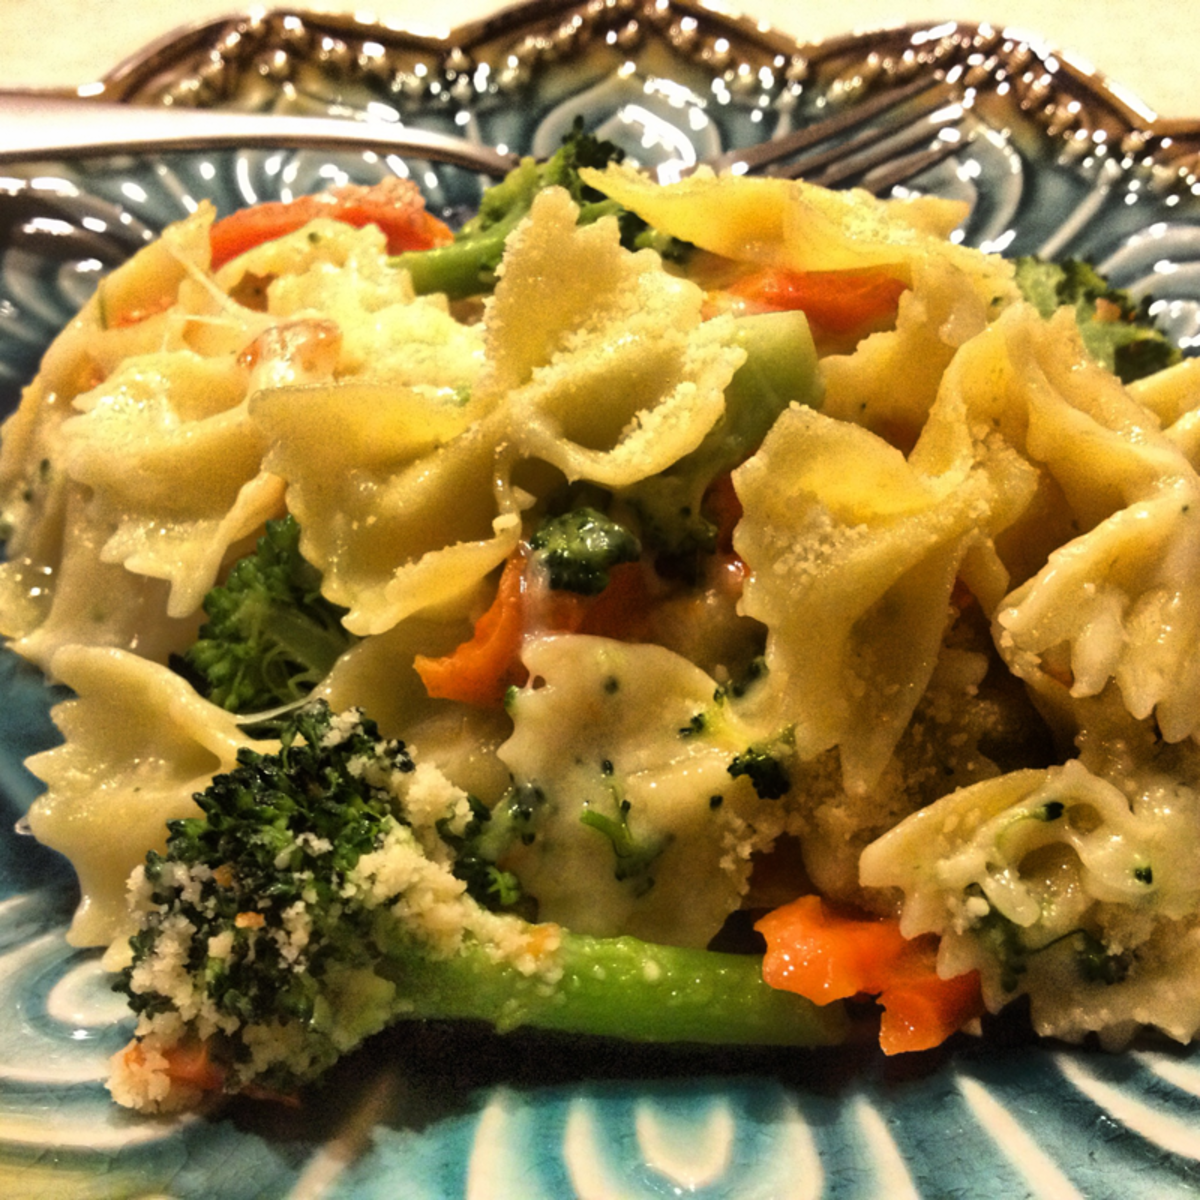 This is a delicious baked pasta and vegetable recipe.